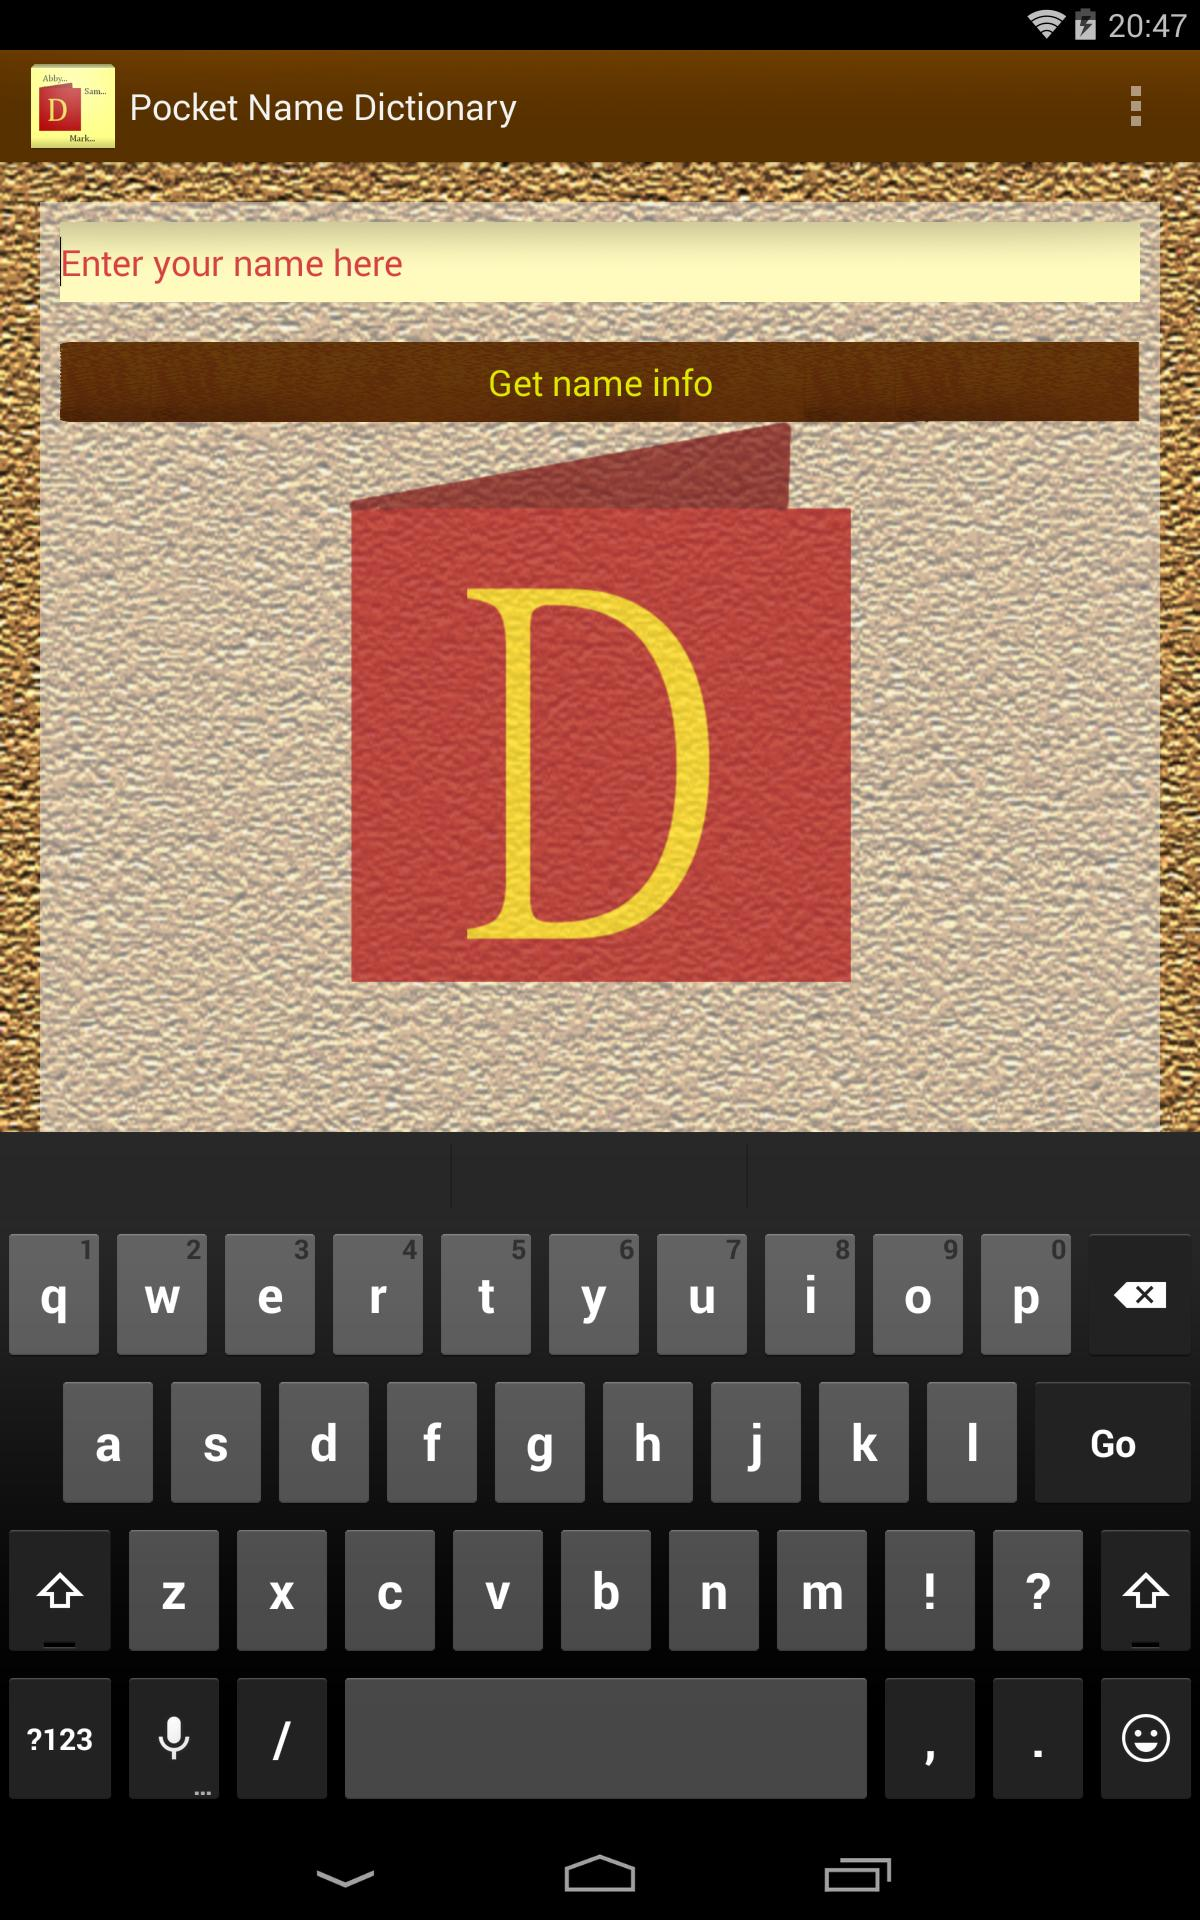 Pocket Name Dictionary for Android - APK Download